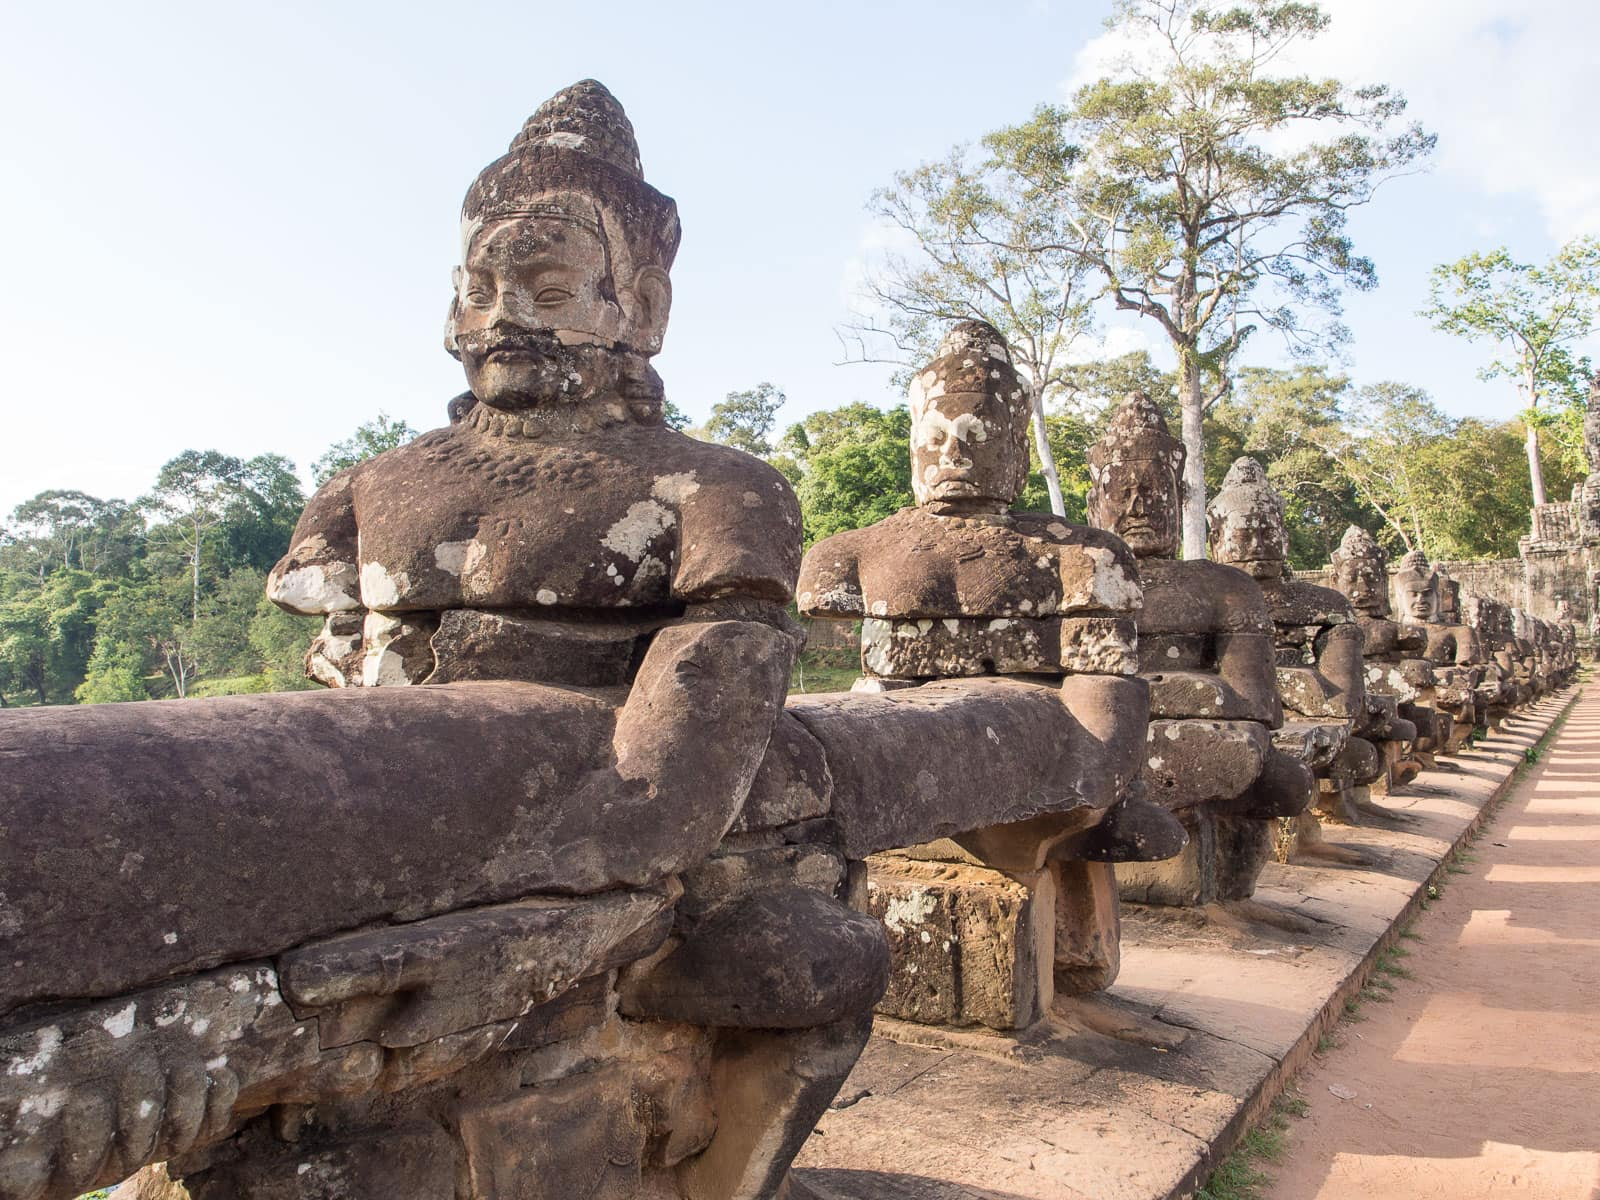 Row of statues of gods holding body of a long snake